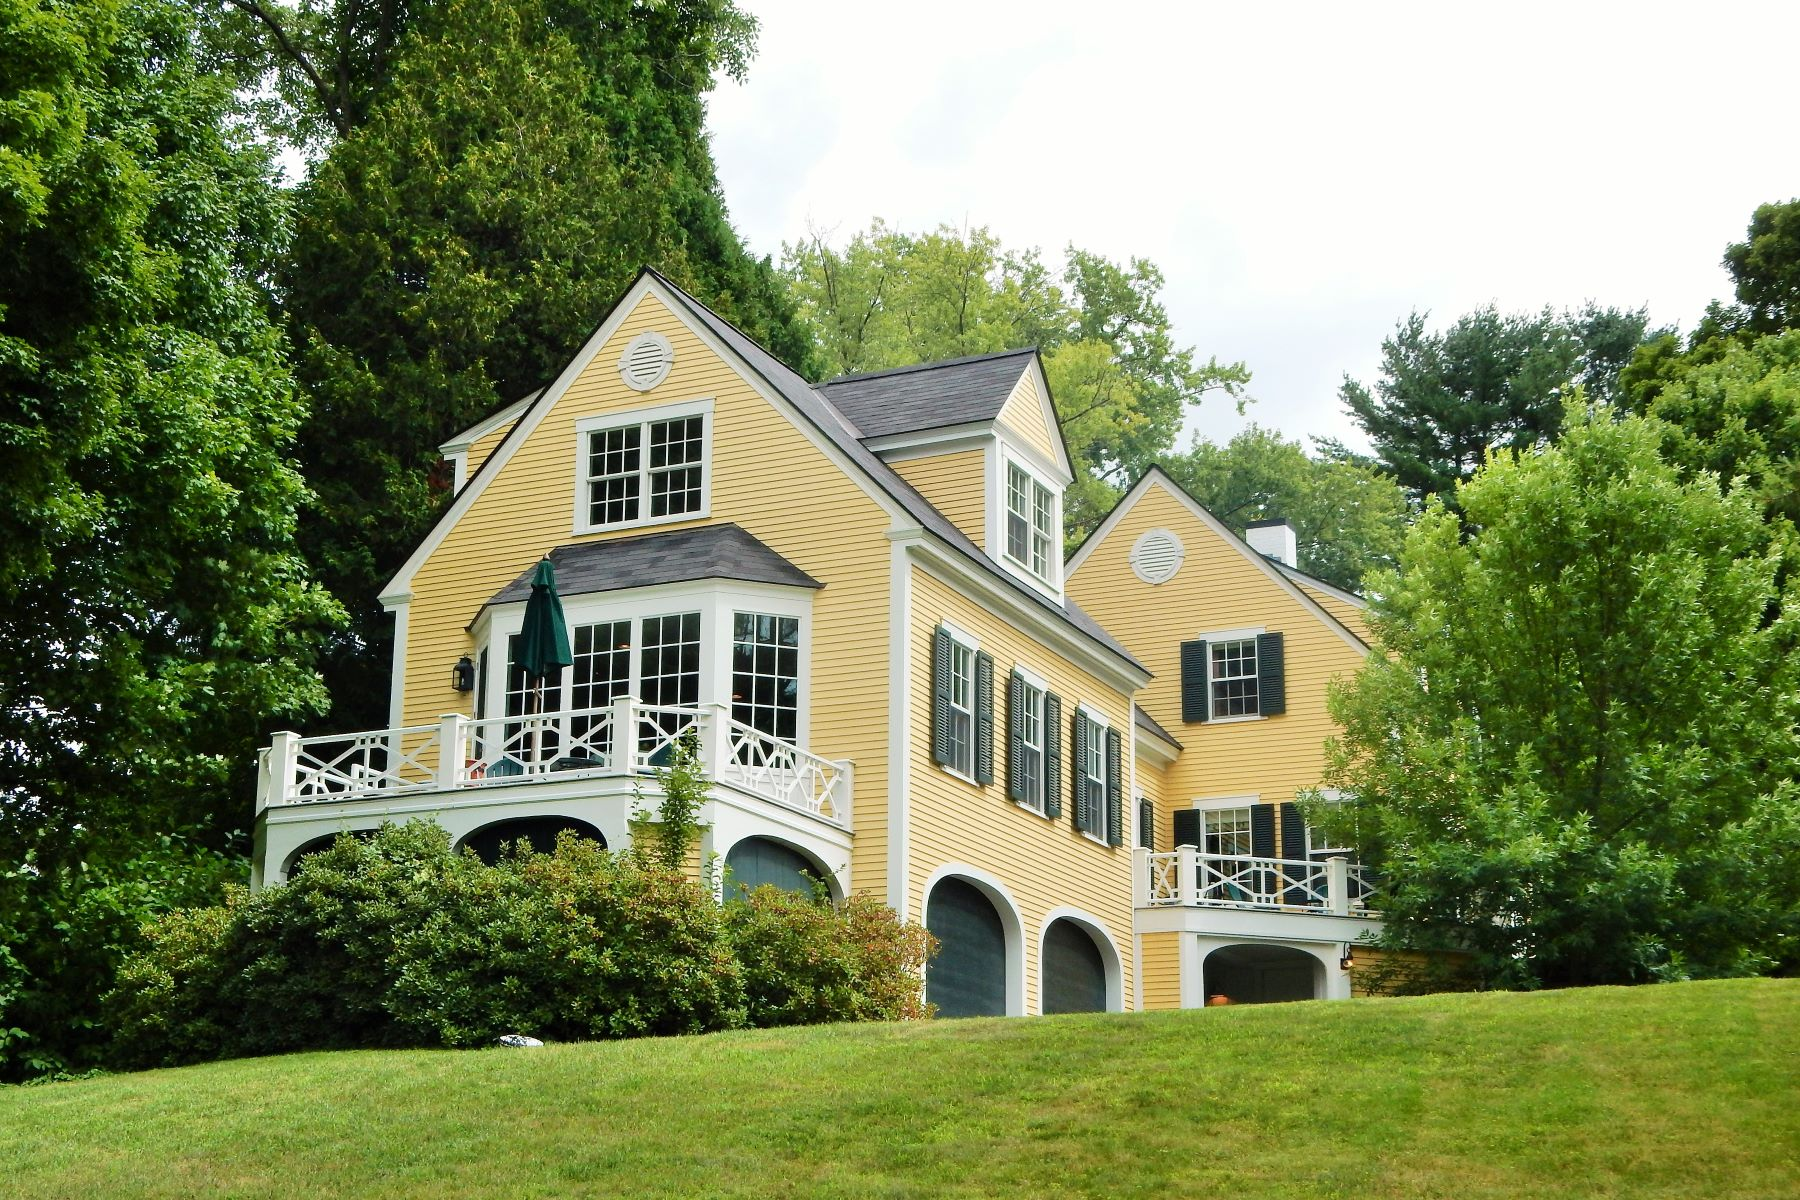 Maison unifamiliale pour l Vente à Immaculate home on Occum Pond in Hanover 14 Rope Ferry Rd Hanover, New Hampshire, 03755 États-Unis